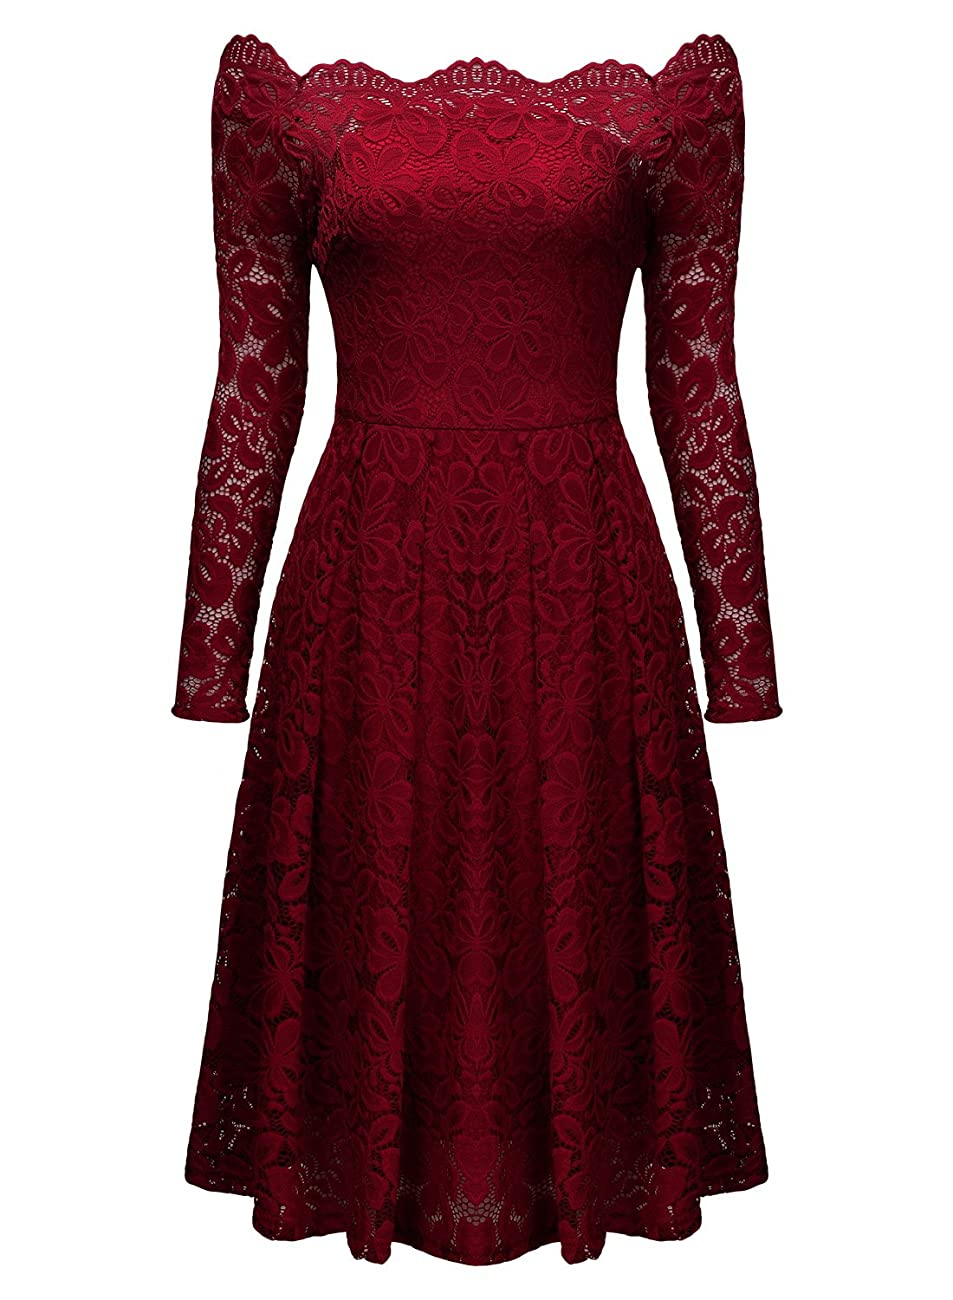 MissMay Women's Vintage Floral Lace Long Sleeve Boat Neck Cocktail Formal Swing Dress 2